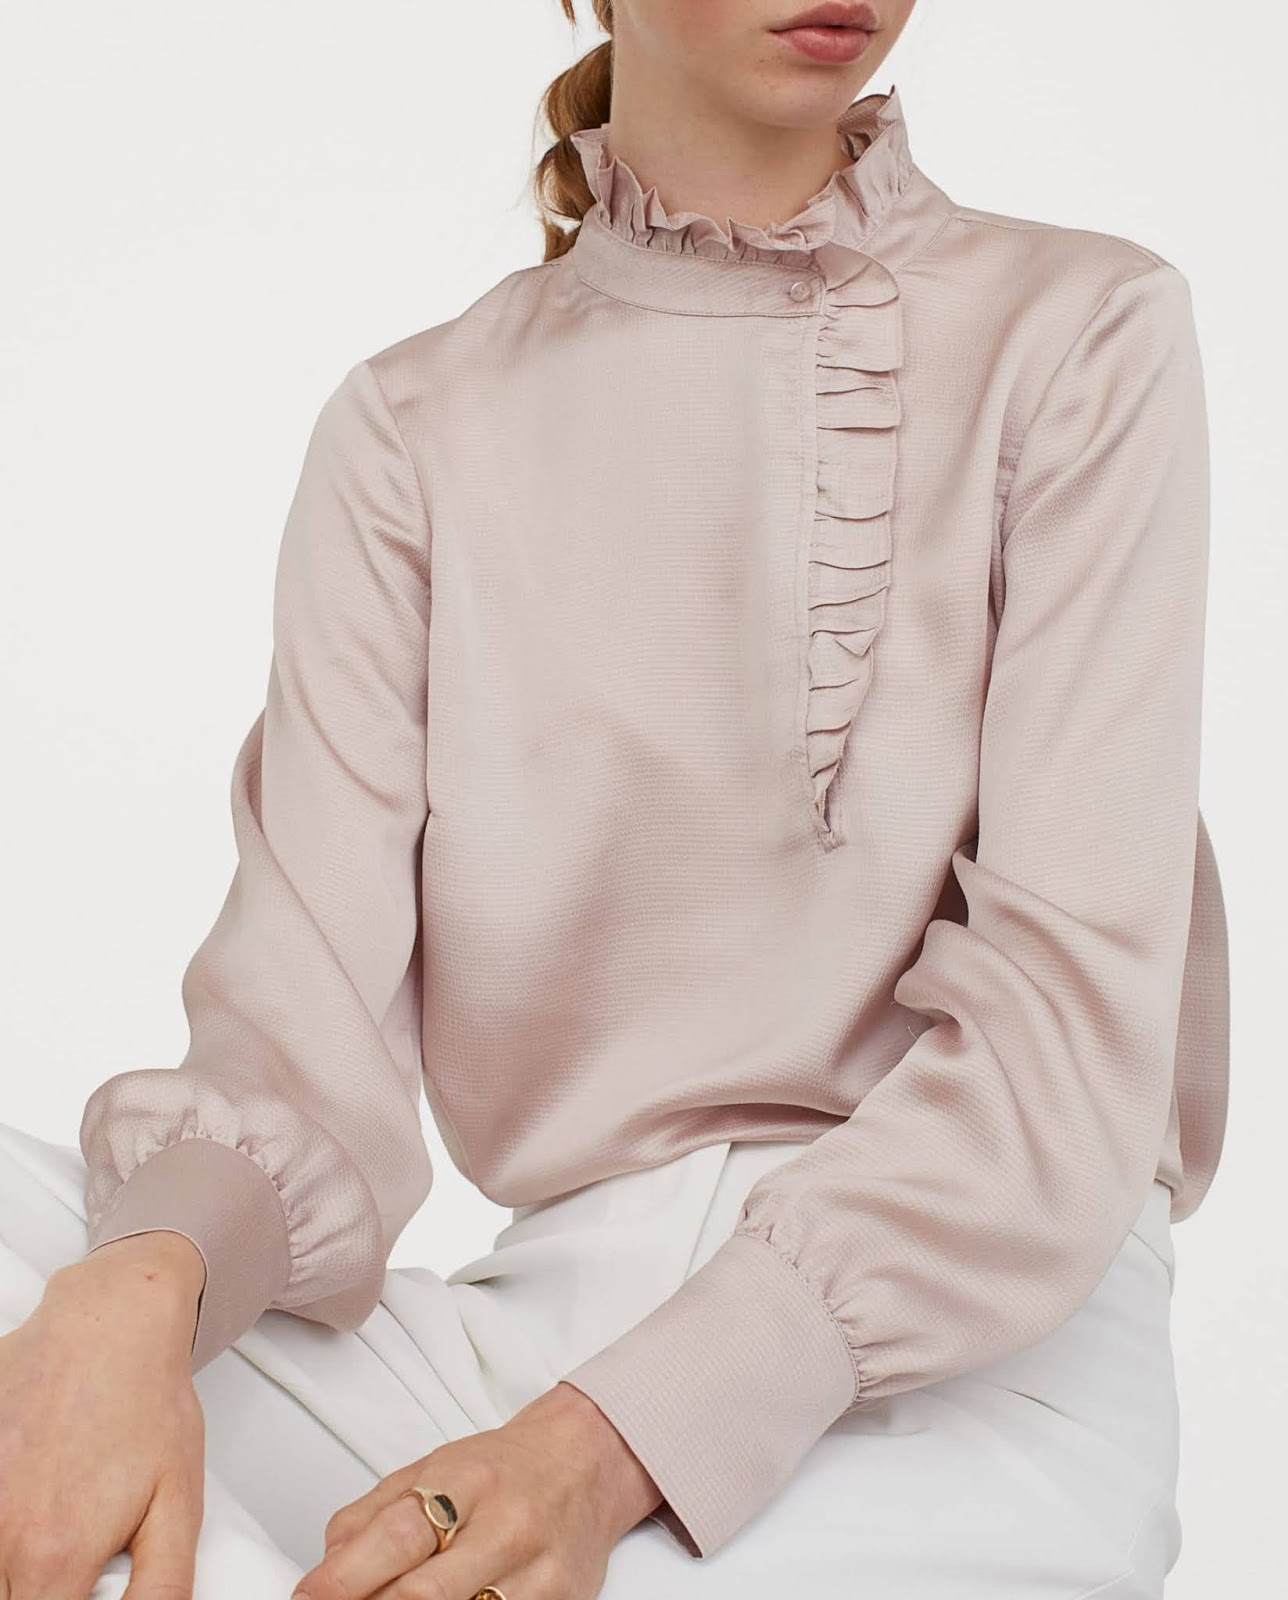 ruffle-trimmed blouse